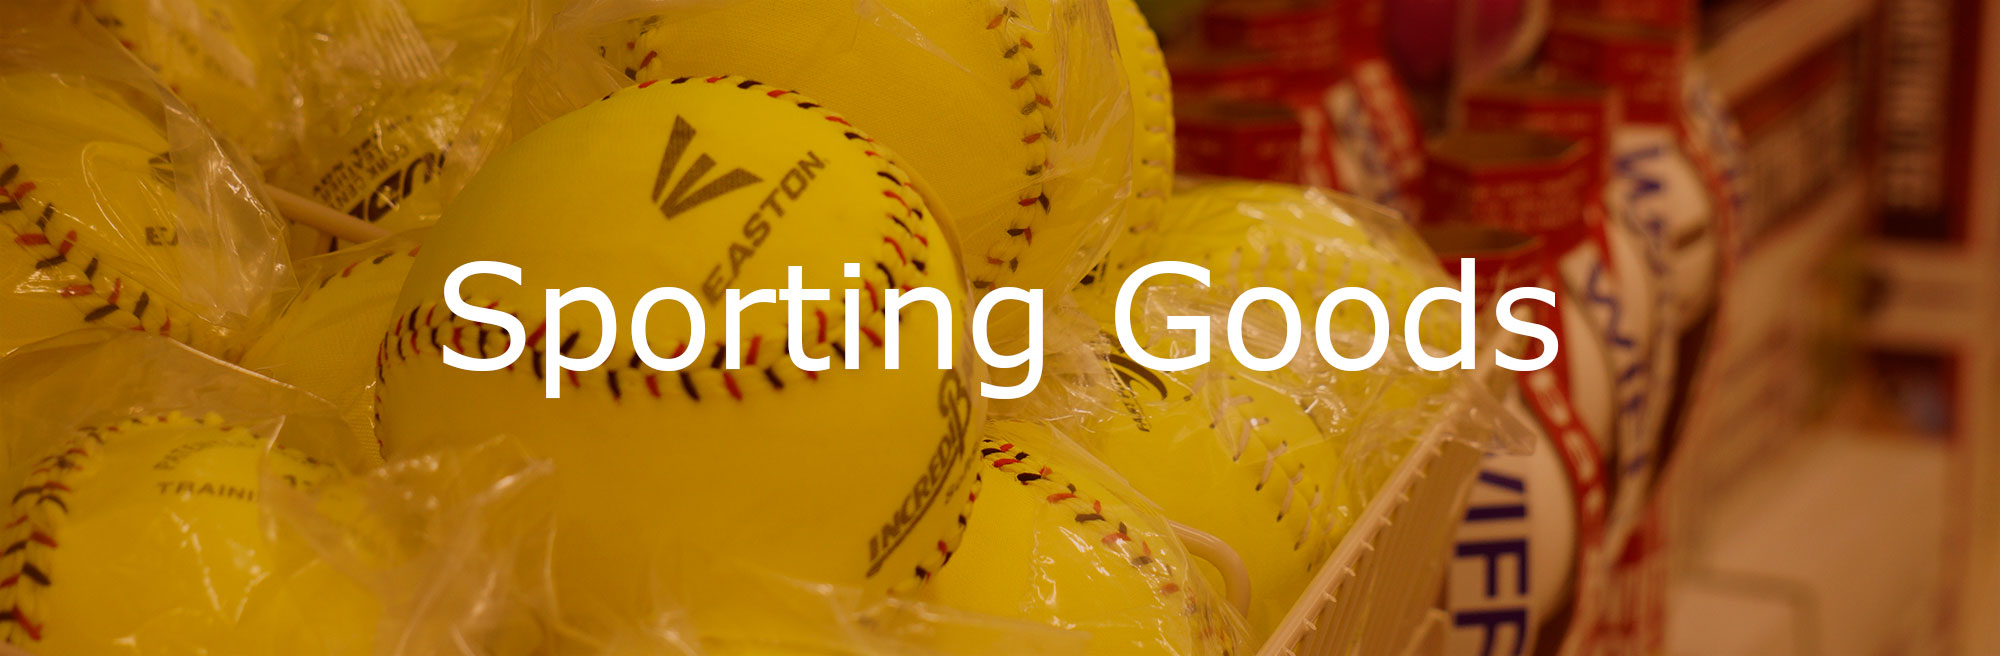 Sporting Goods Department at Good's Store